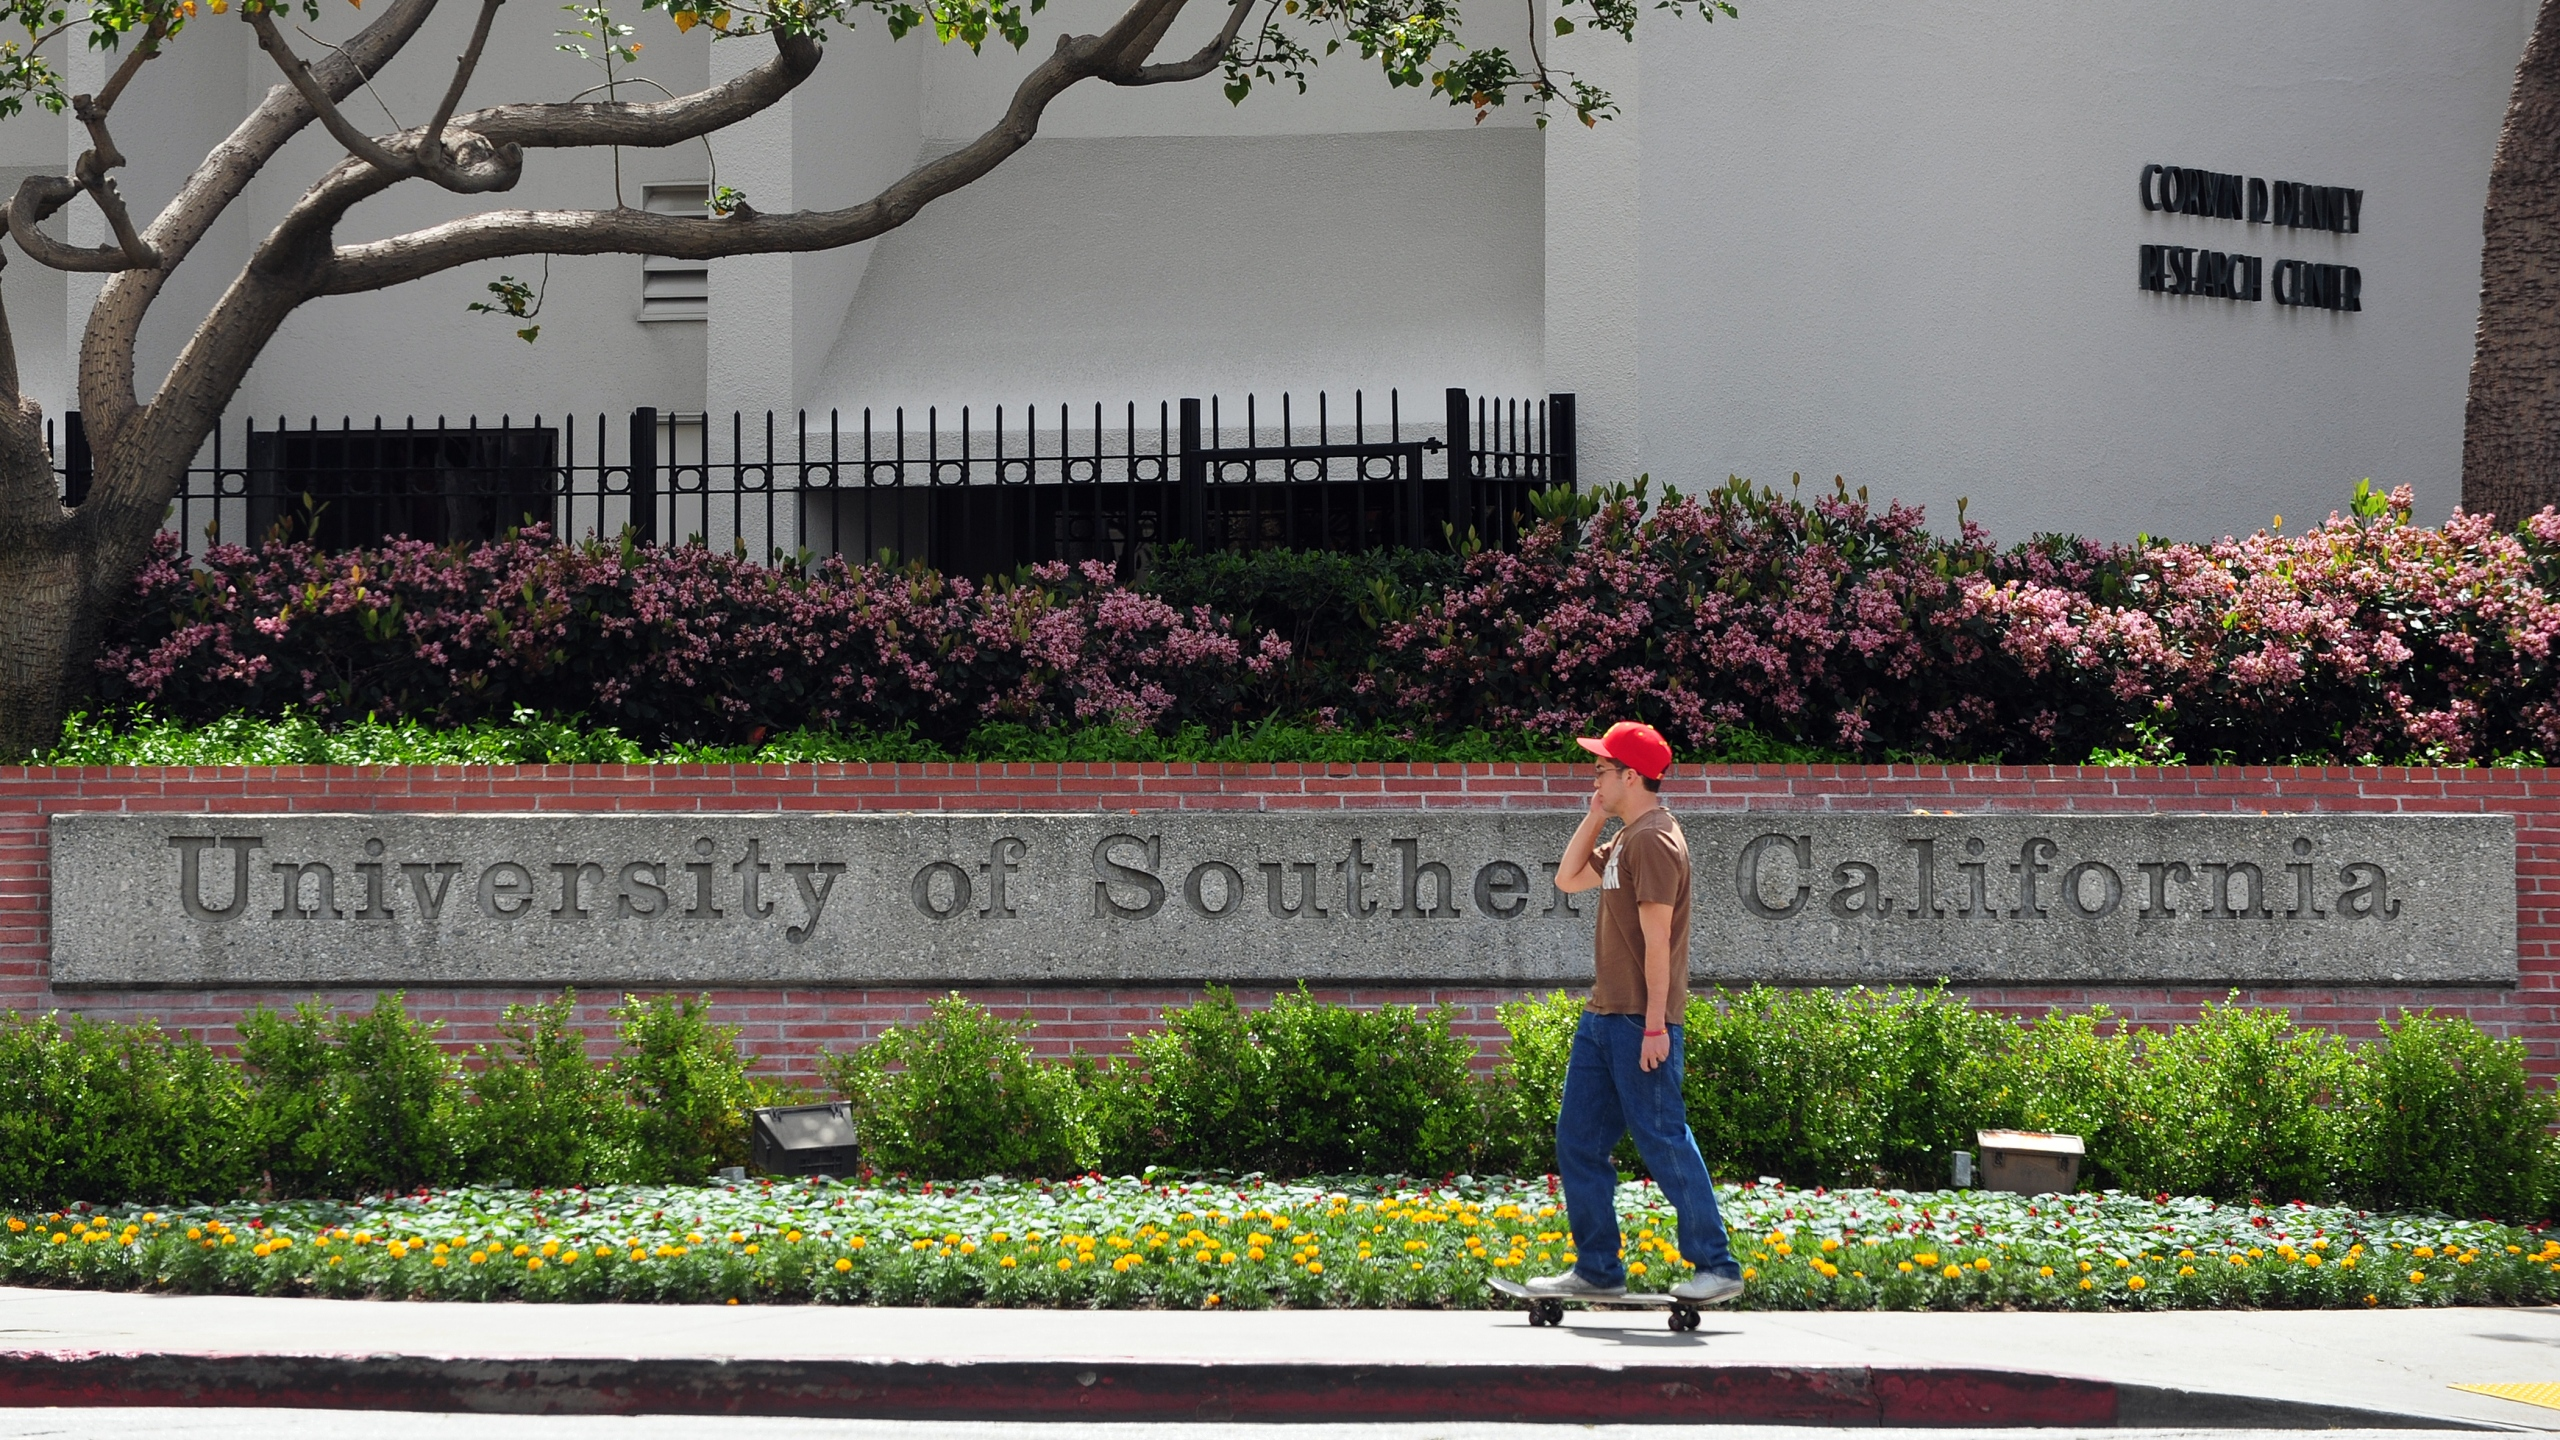 A student rides his skateboard past an entrance to the University of Southern California campus in Los Angeles on April 11, 2012. (Credit: FREDERIC J. BROWN/AFP/Getty Images)